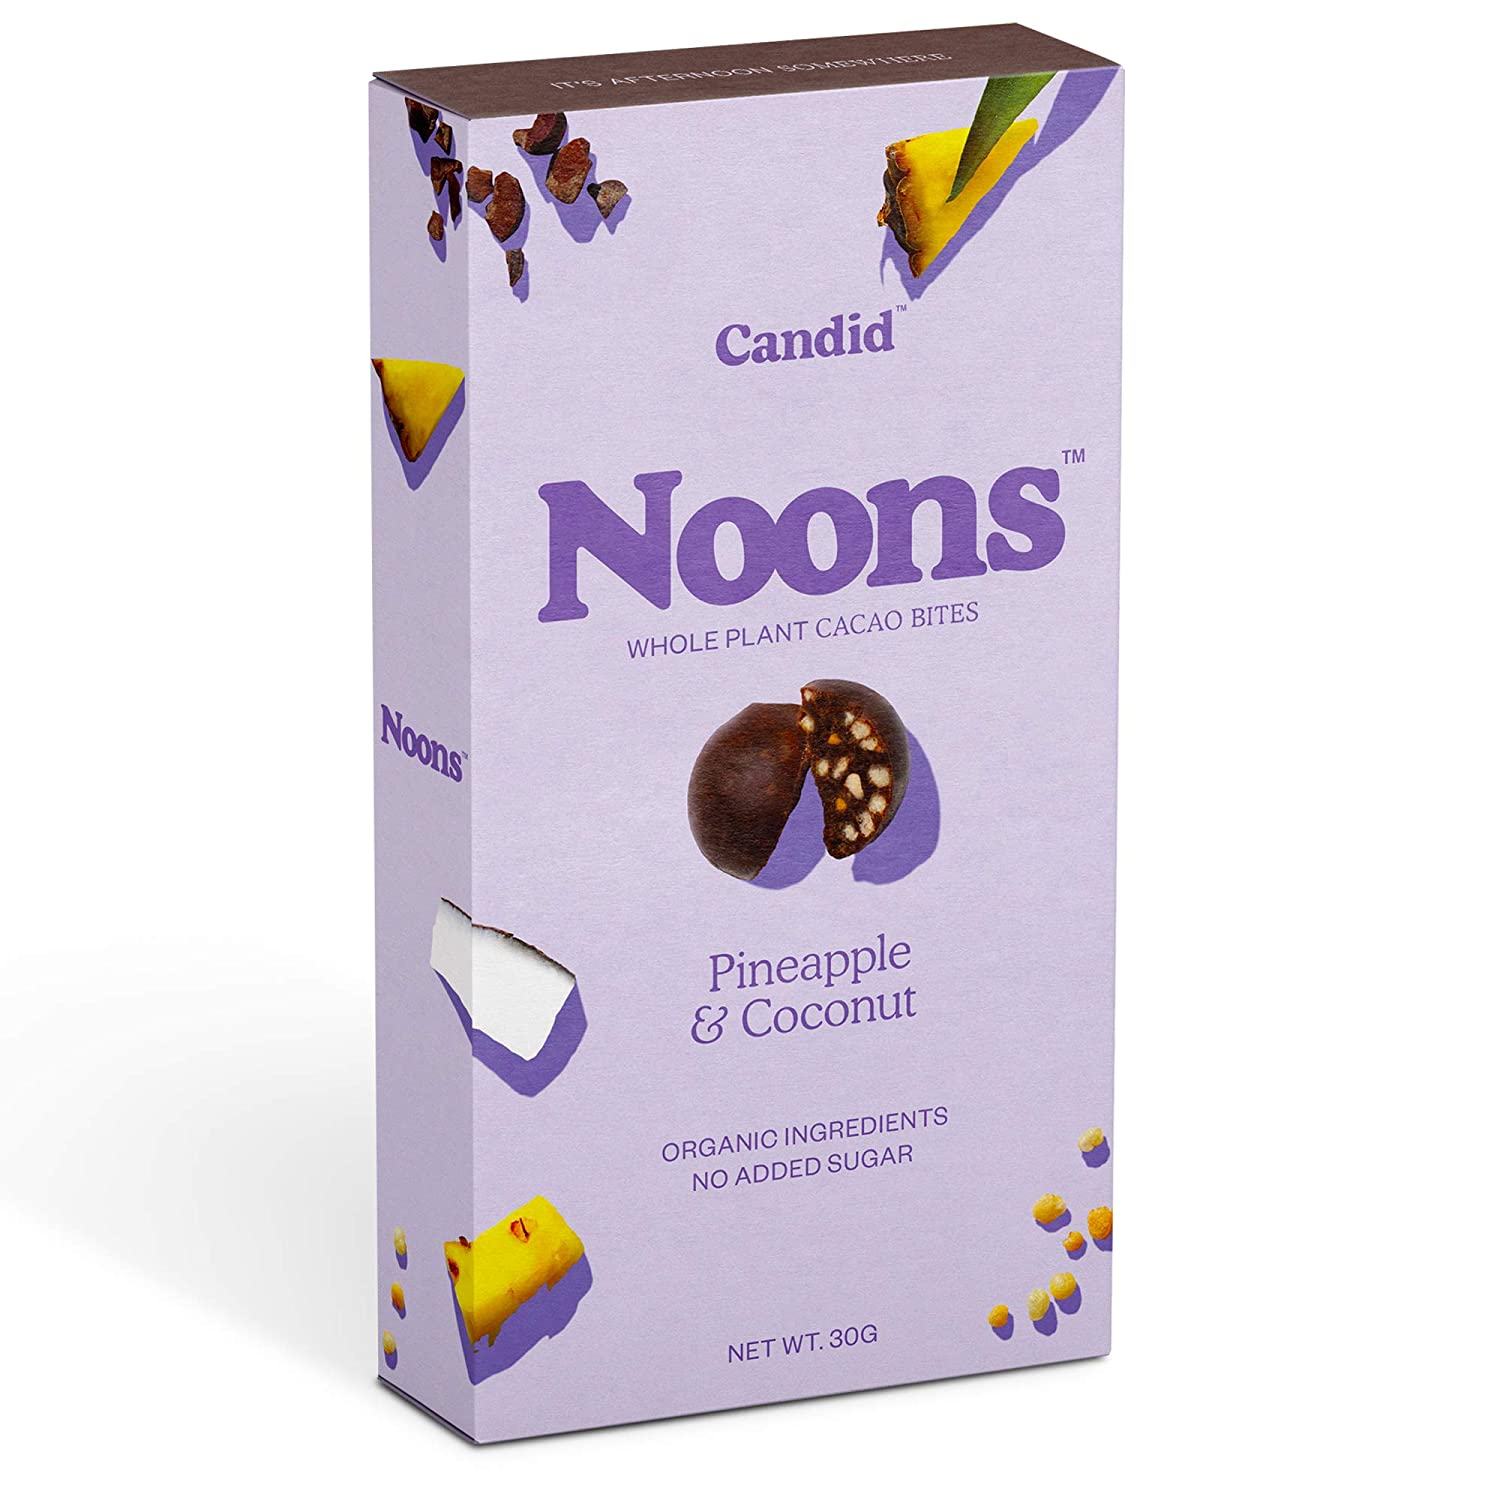 Noons - Pineapple & Coconut Cacao Bites